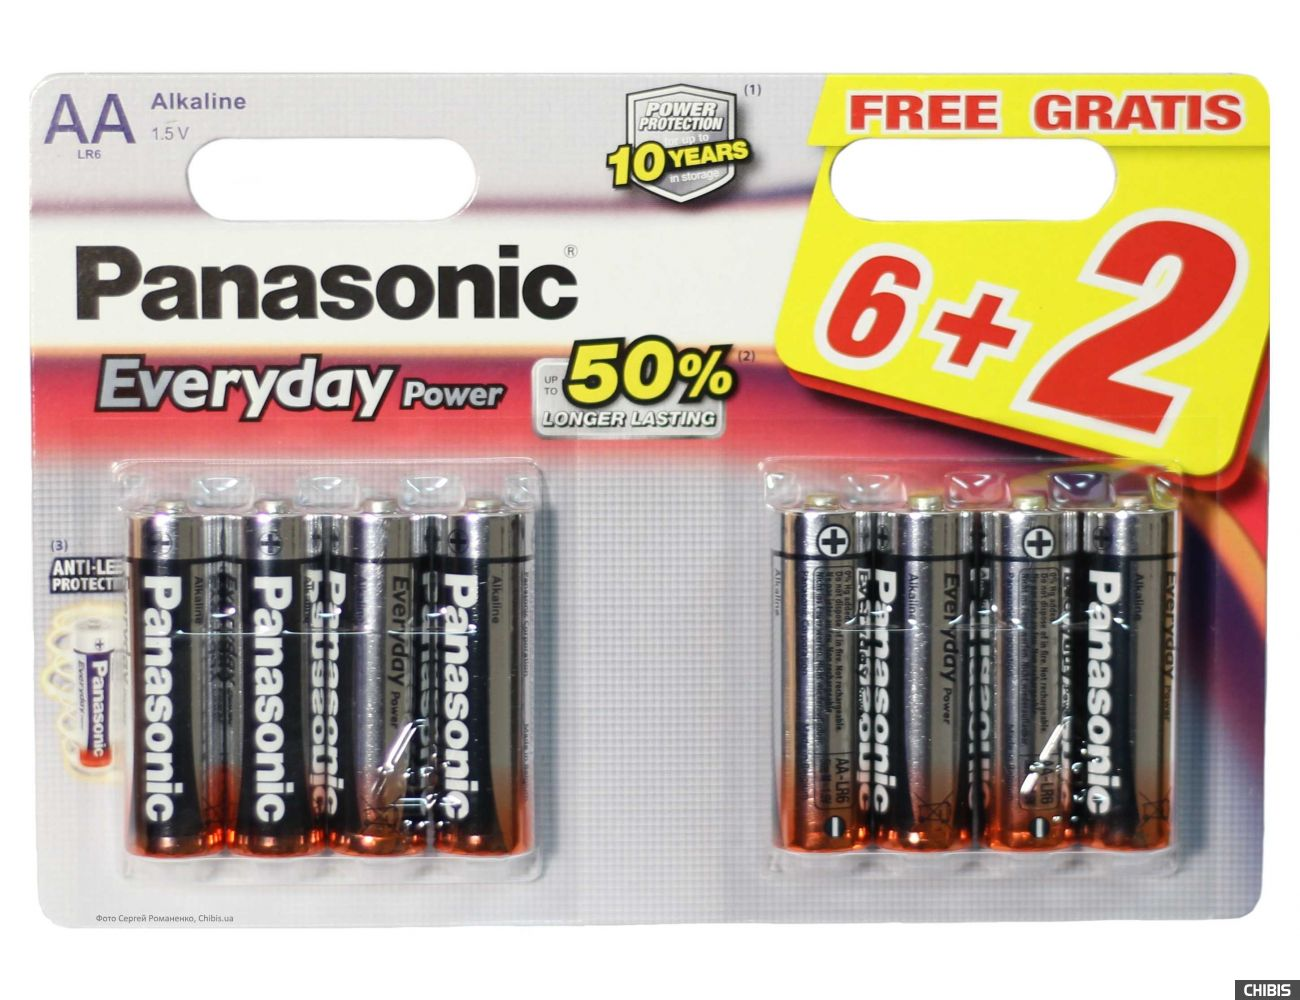 Батарейка АА Panasonic Everyday Power 6+2 LR06 1.5V alkaline блистер 8 шт